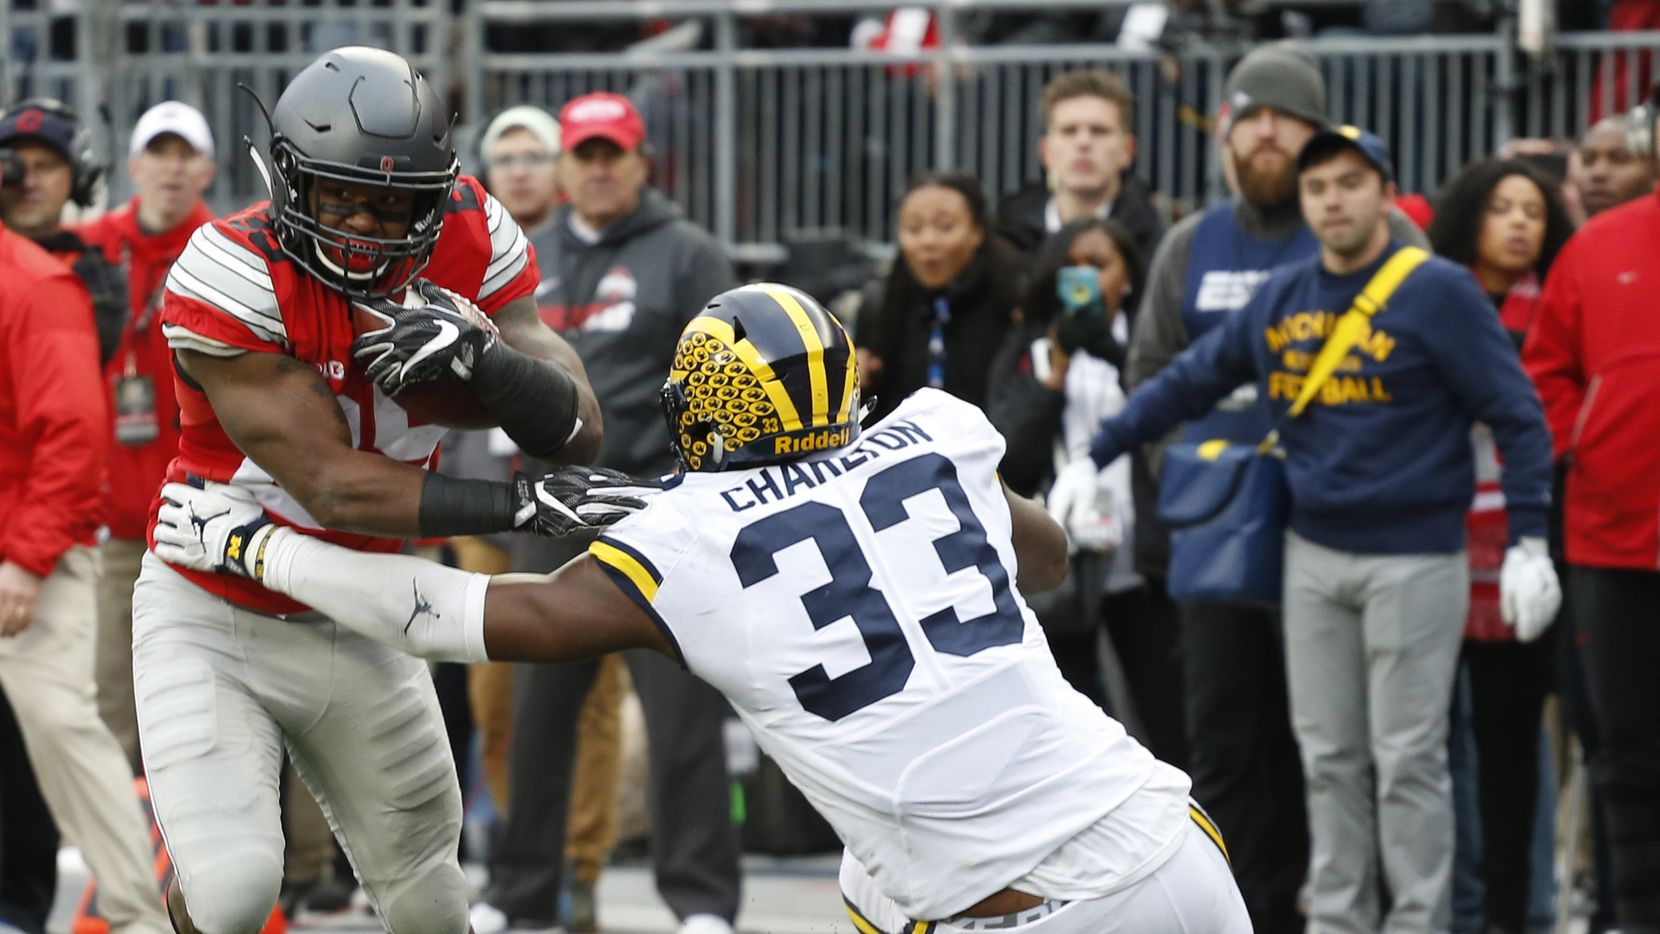 Ohio State running back Mike Weber, left, runs the ball as Michigan defensive end Taco Charlton makes the tackle during the second half of an NCAA college football game Saturday, Nov. 26, 2016, in Columbus, Ohio. Ohio State beat Michigan 30-27 in double overtime. (AP Photo/Jay LaPrete)